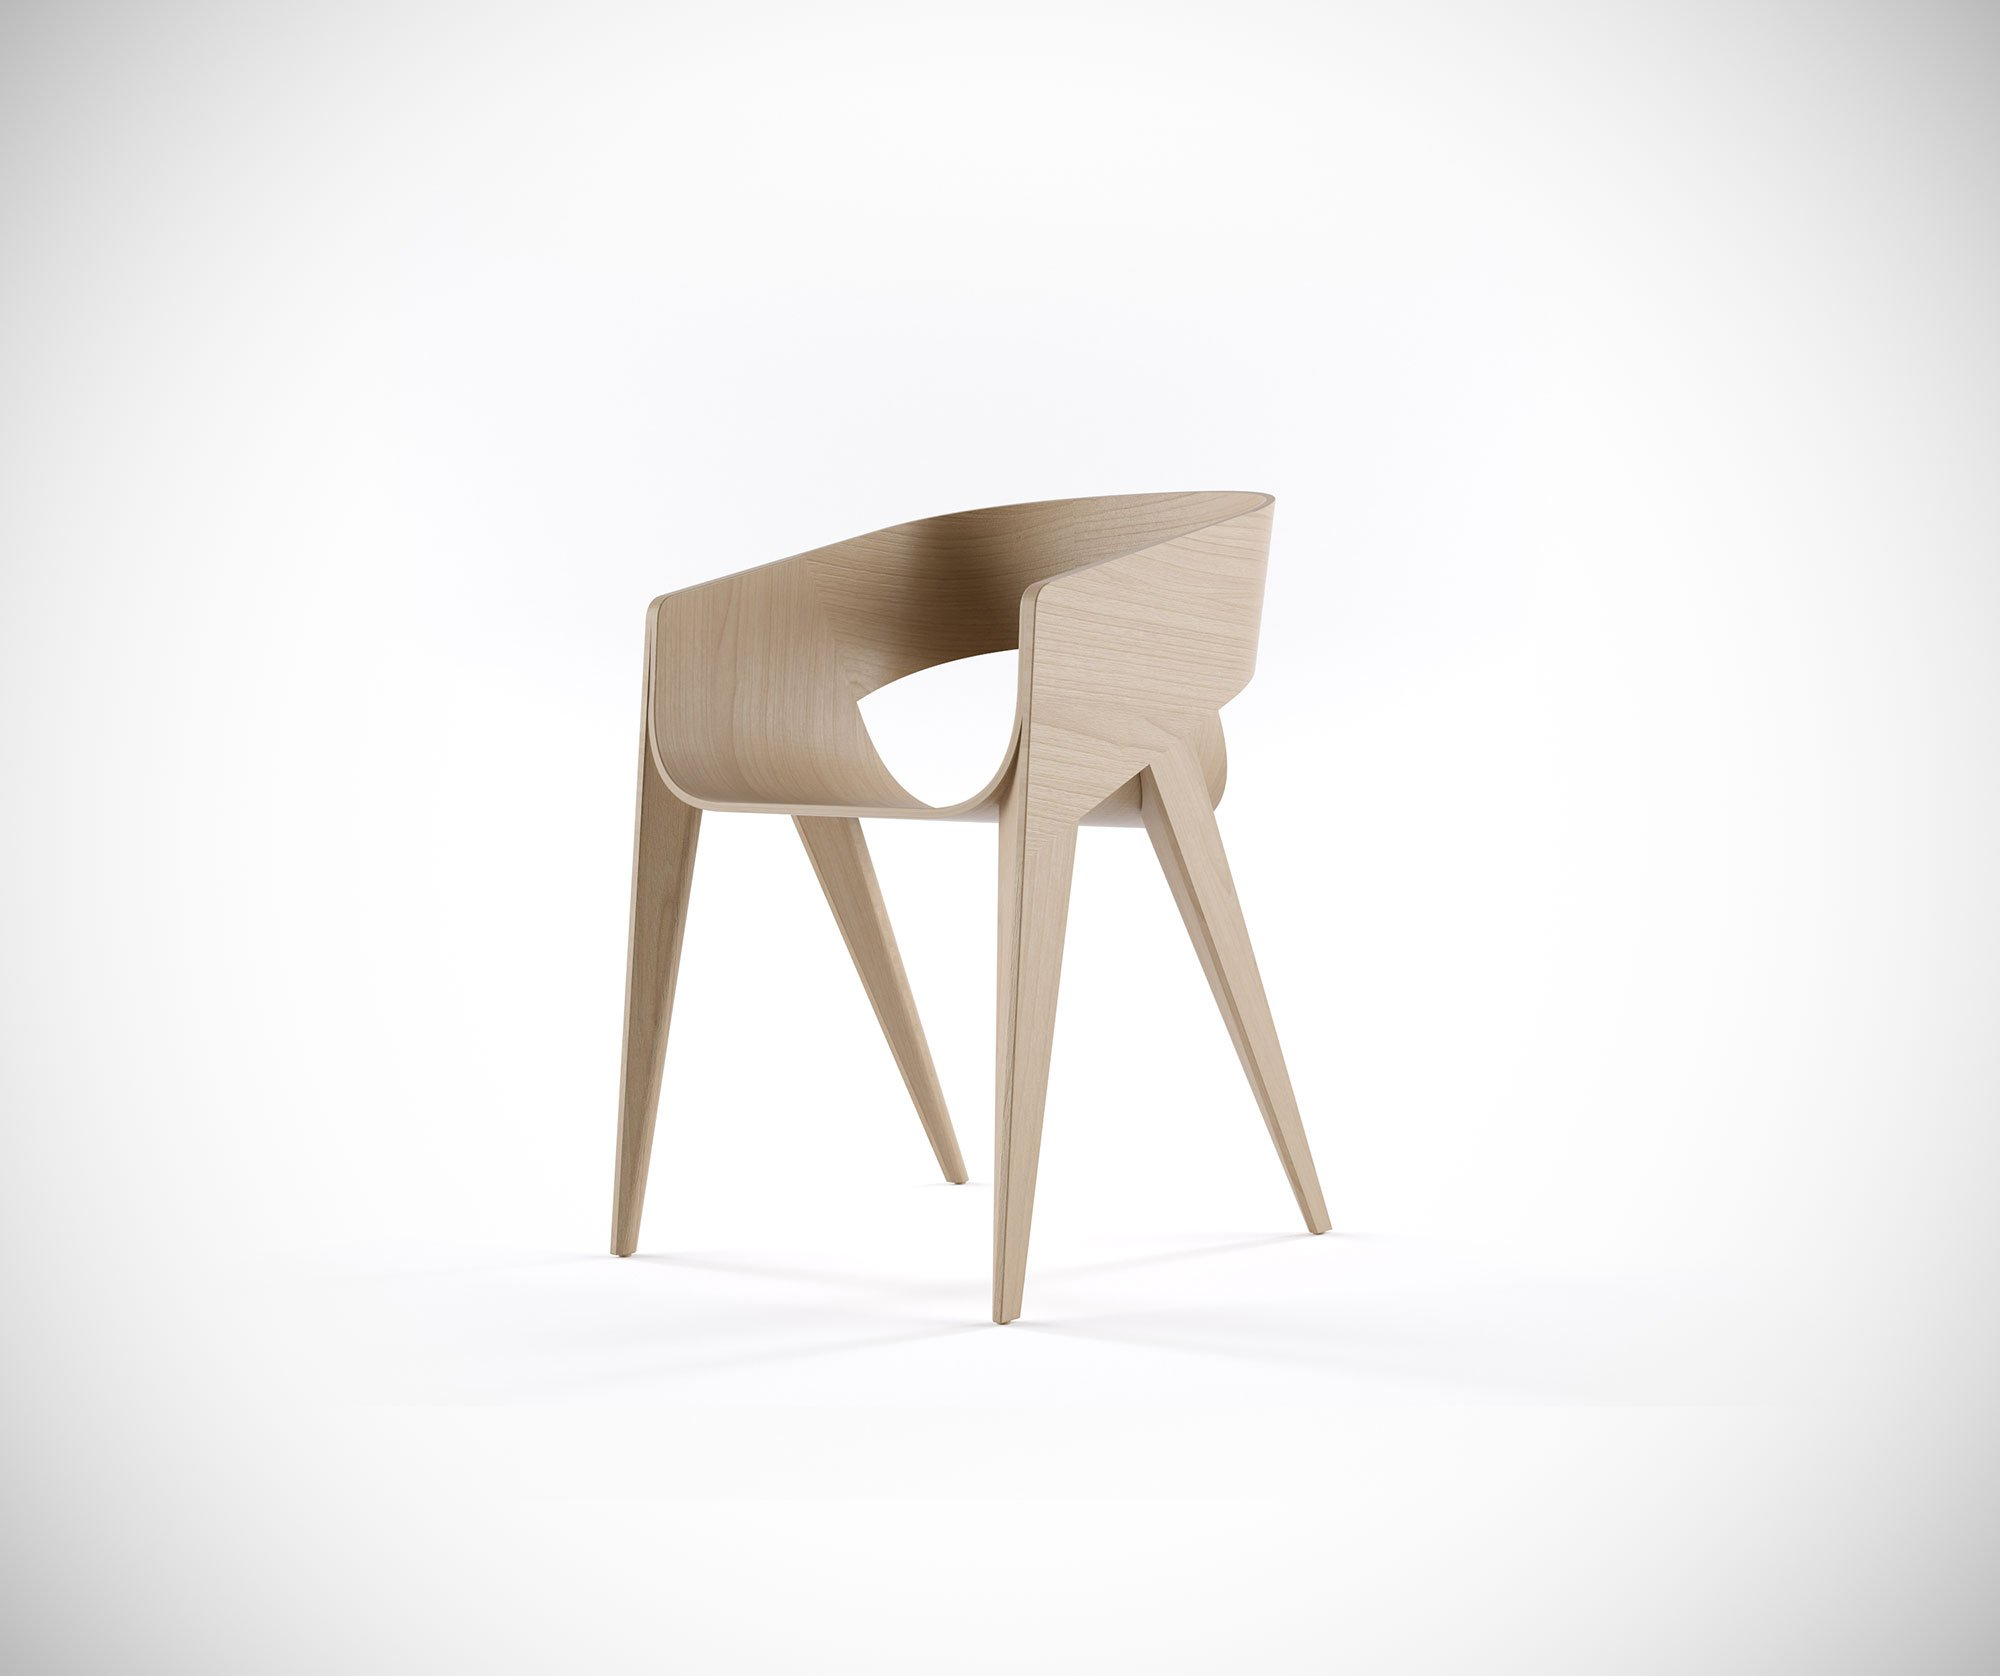 most comfortable accent chairs toddler chair for eating the elegant and minimalist slim by christophe de sousa